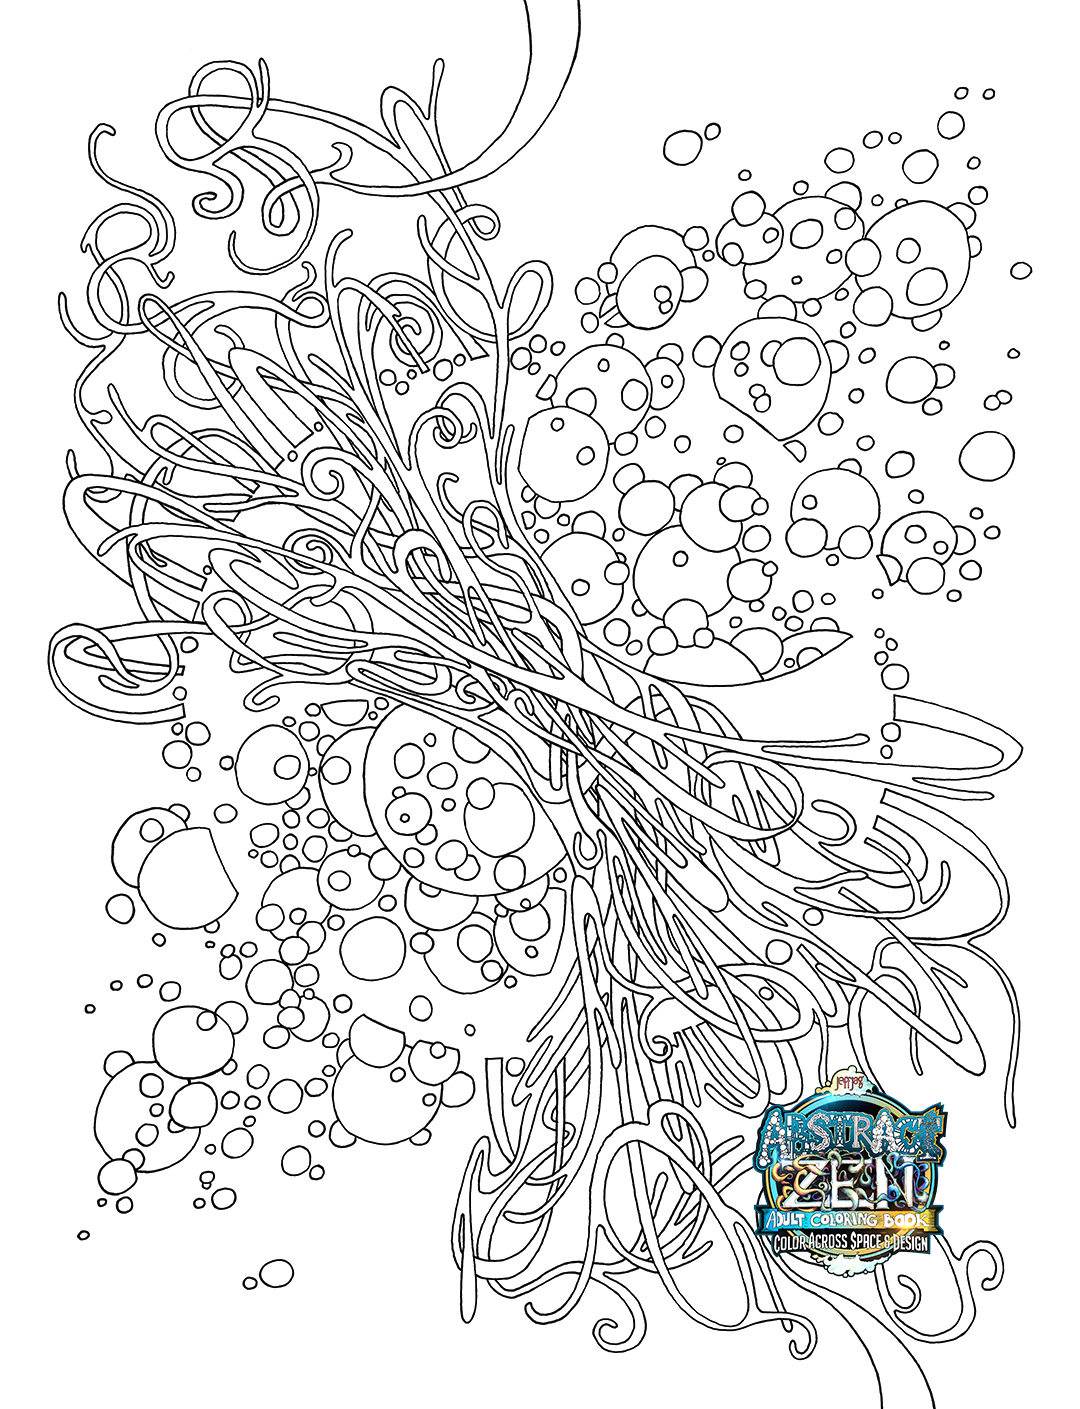 the migration of the electron - Botany Coloring Book